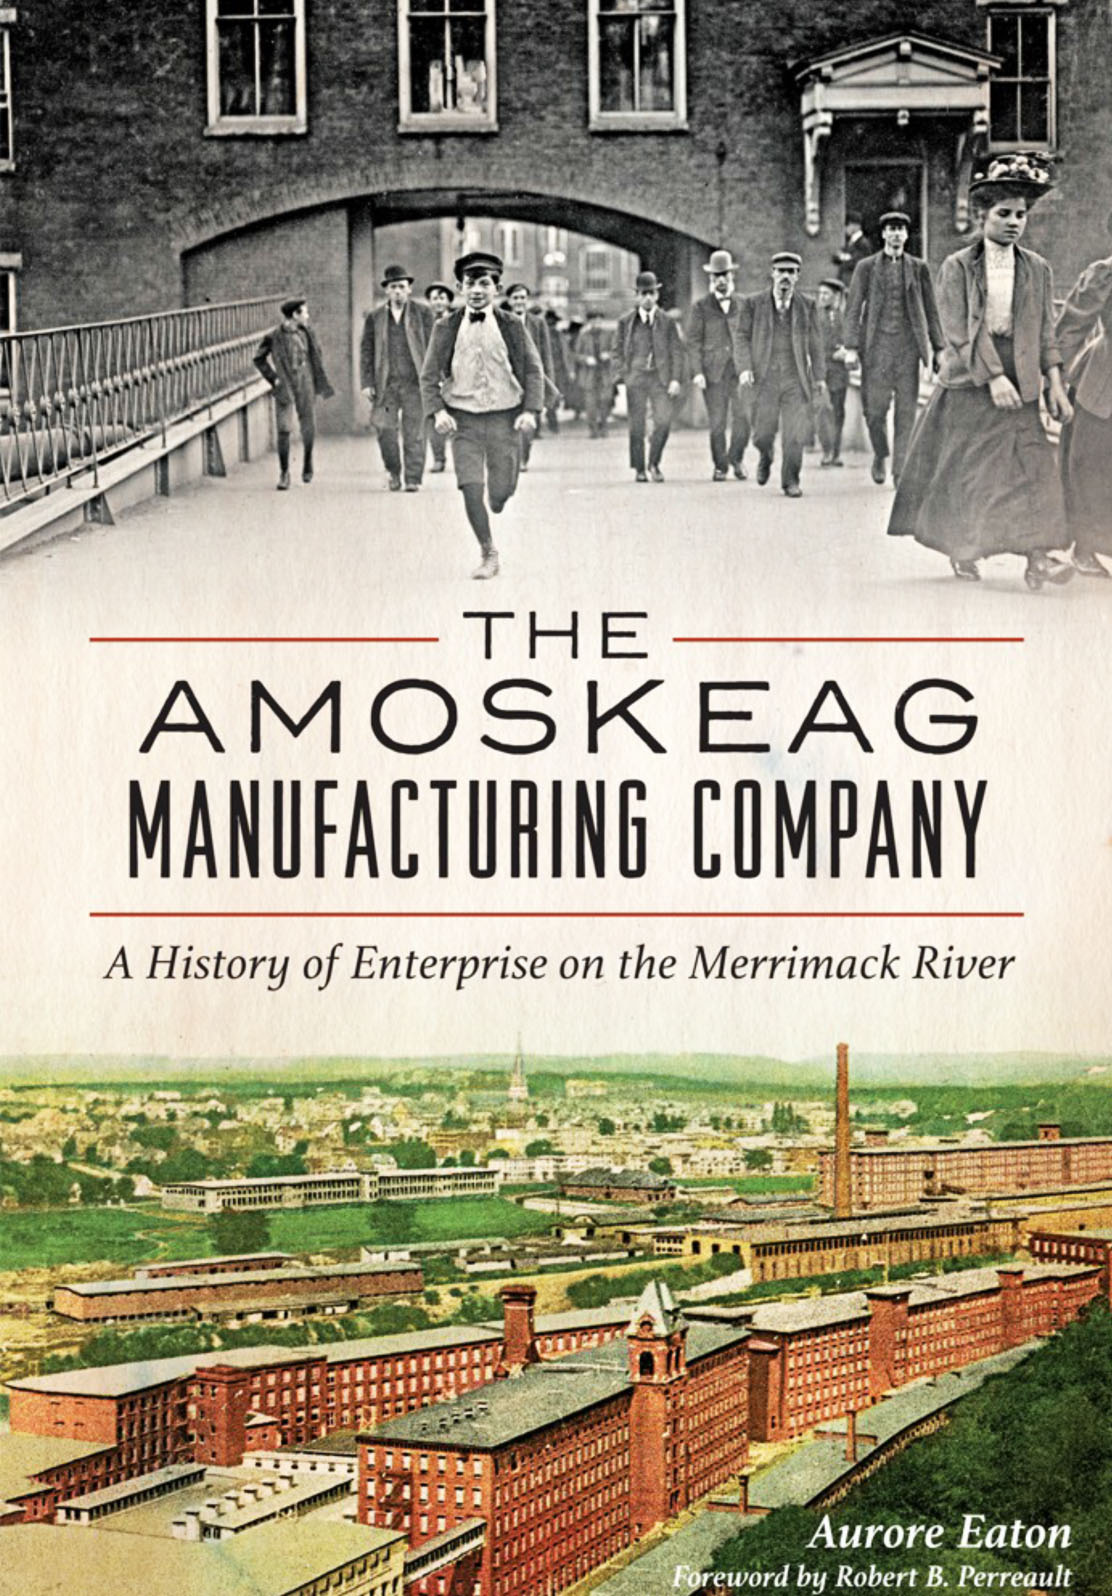 Amoskeag history - book cover image